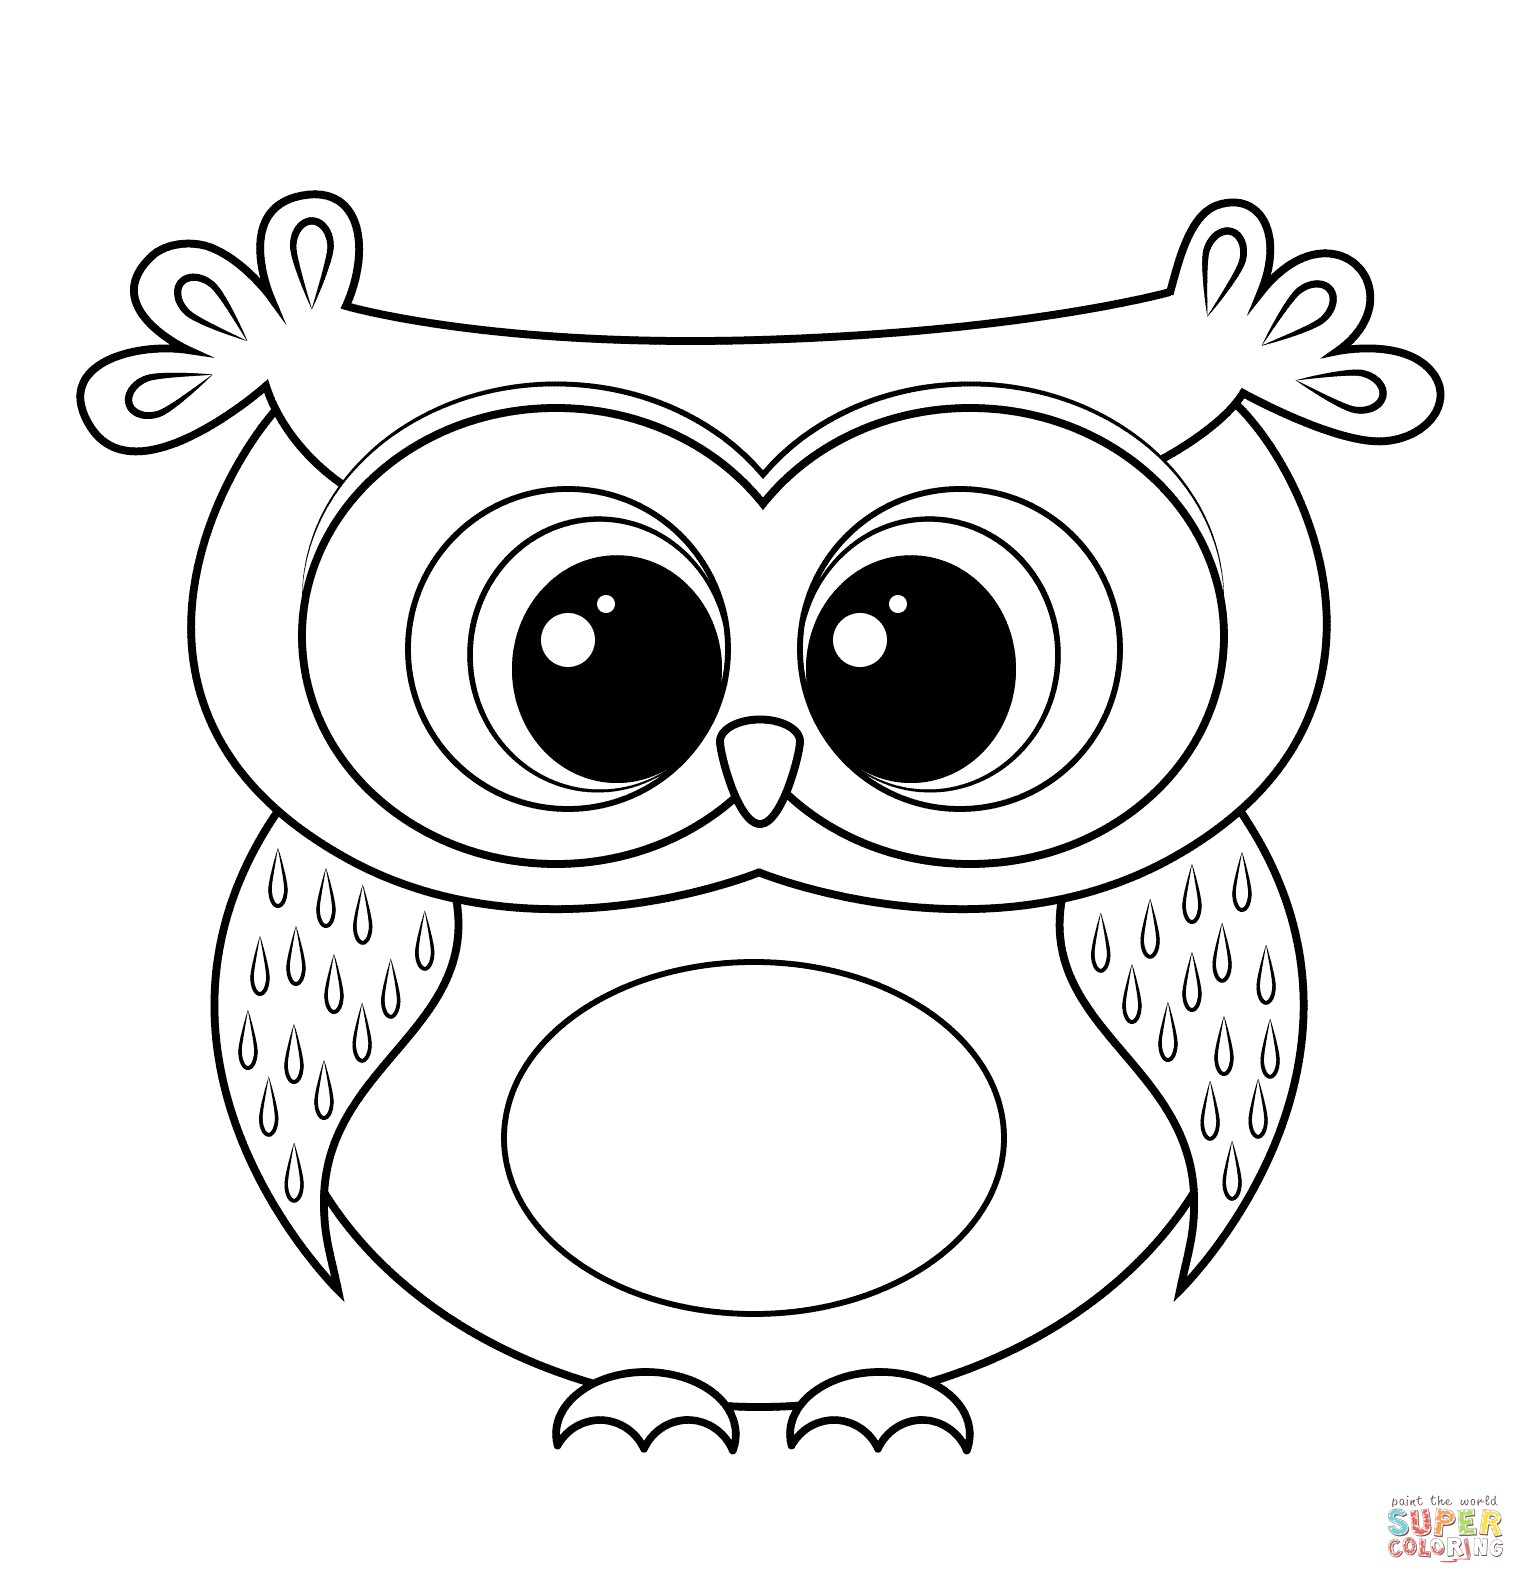 Coloring Ideas : Coloring Ideas Owl Clipart Black And White Cartoon ... clip art freeuse